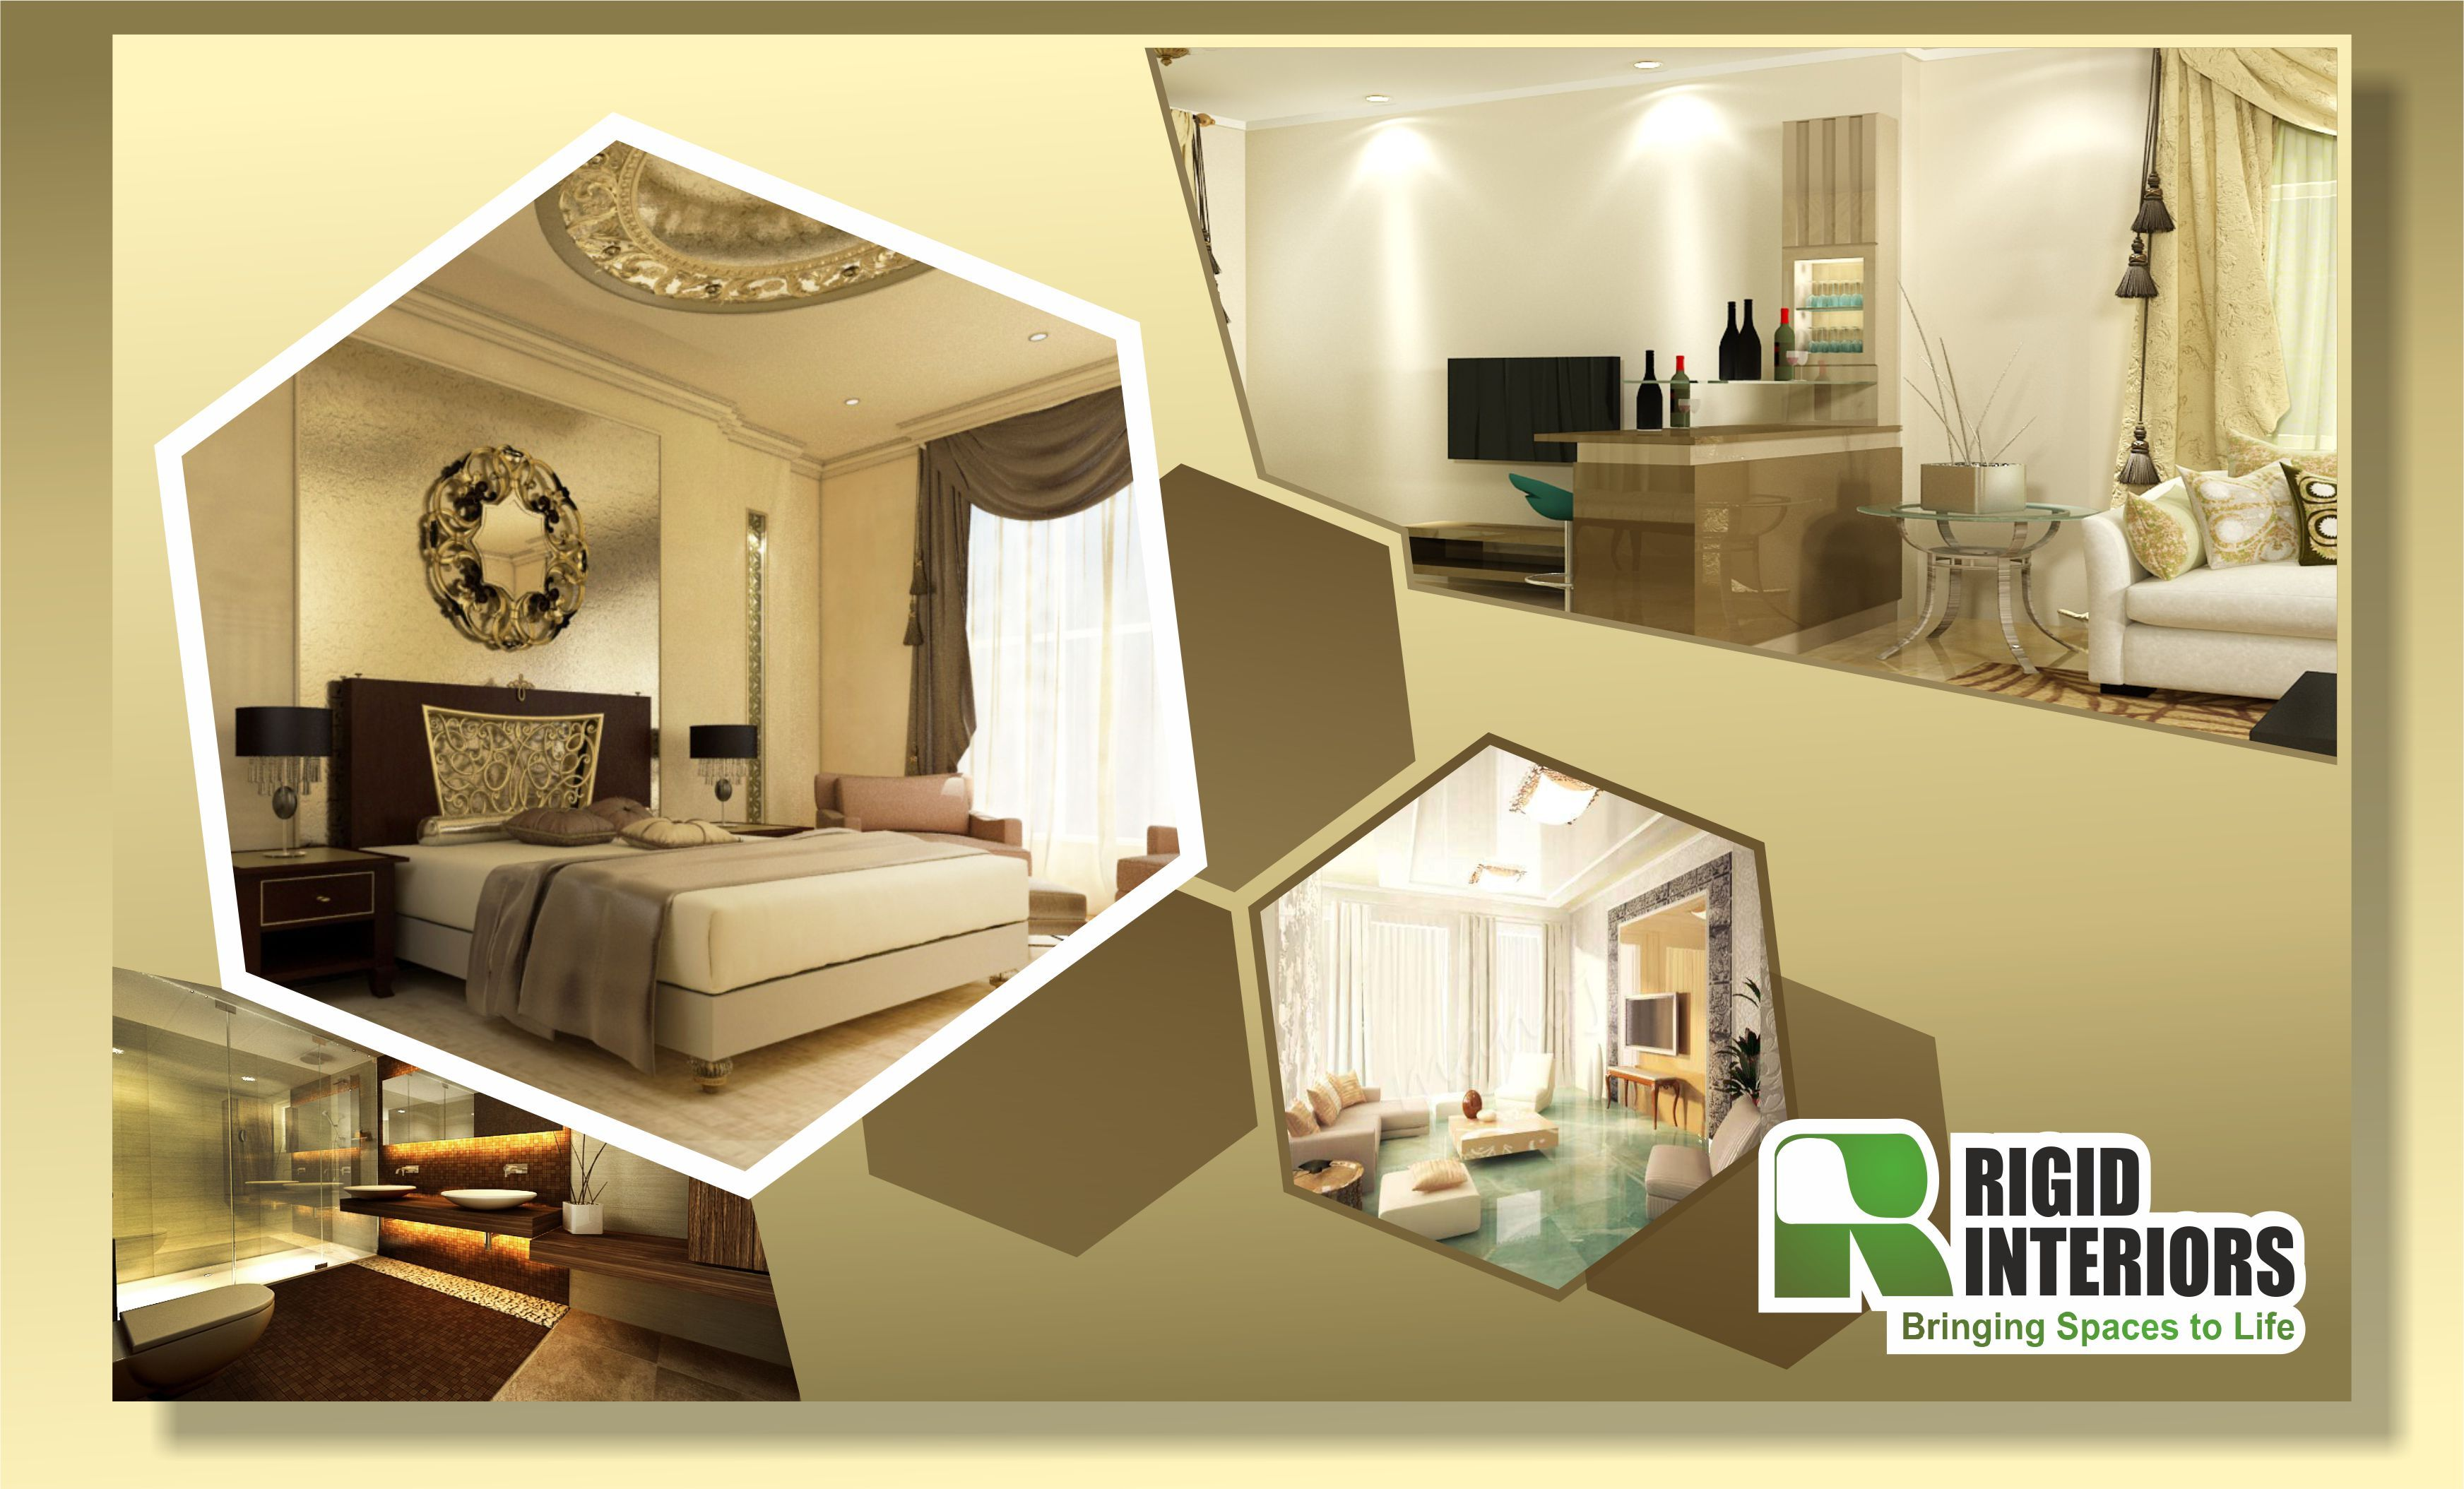 are you looking for professional interior designing companies to